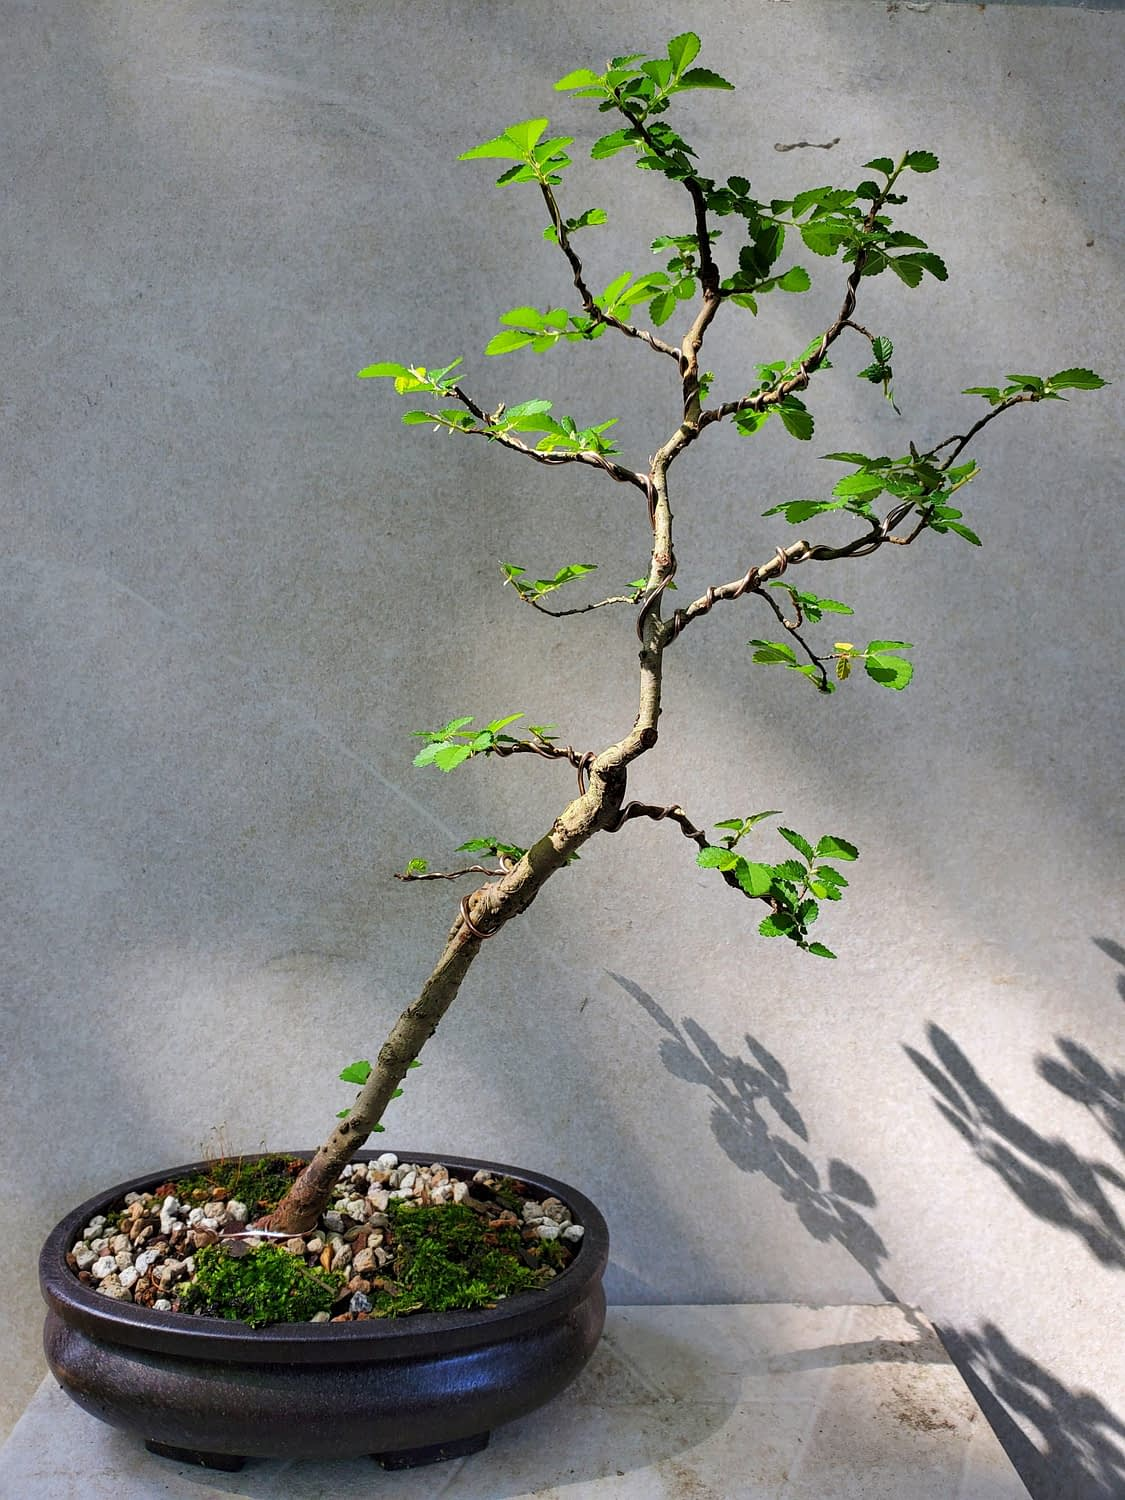 Chinese Elm finished leafing out